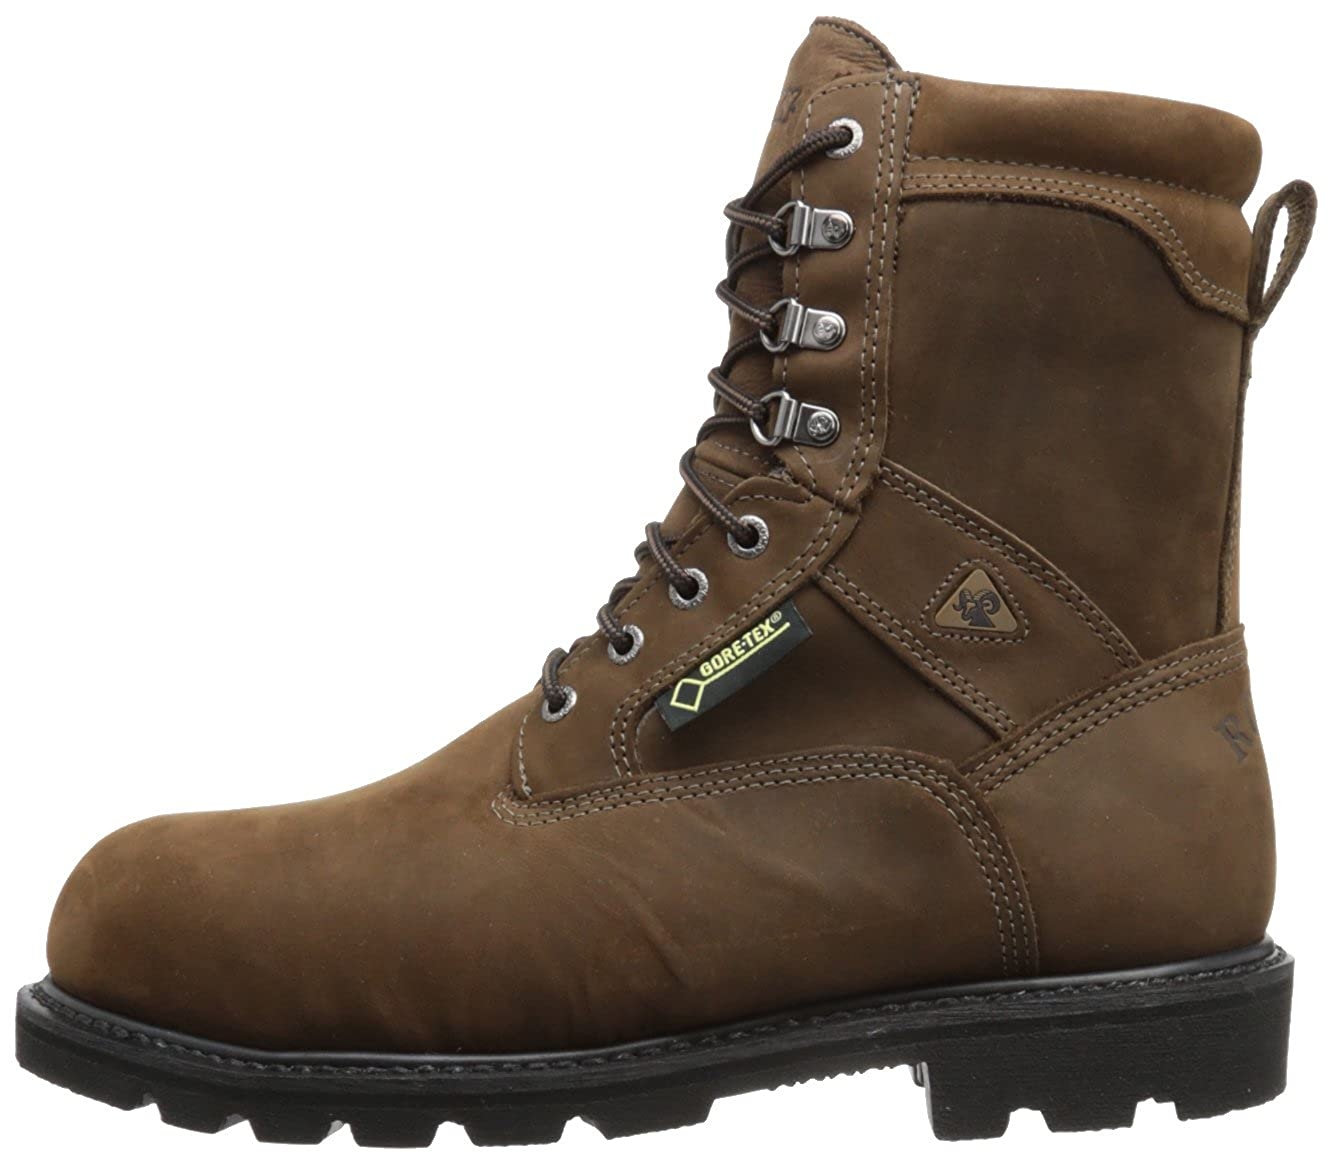 e10e53f2b64 Rocky Men's Ranger Steel Toe Insulated Gore-TEX Boots